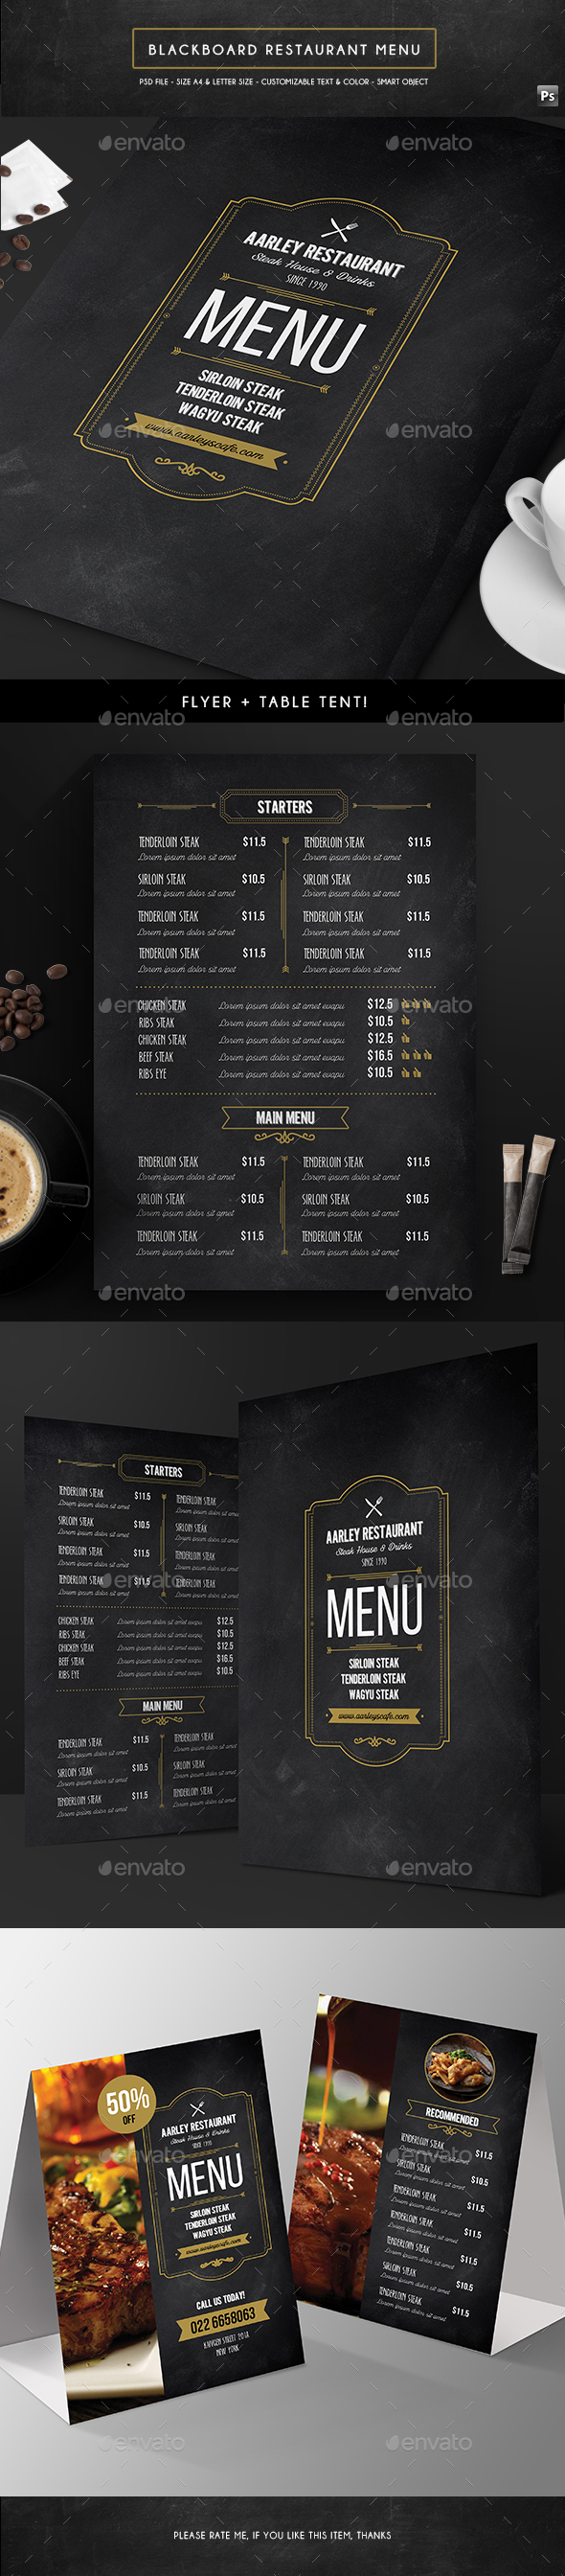 Blackboard Menu Flyer + Table Tent